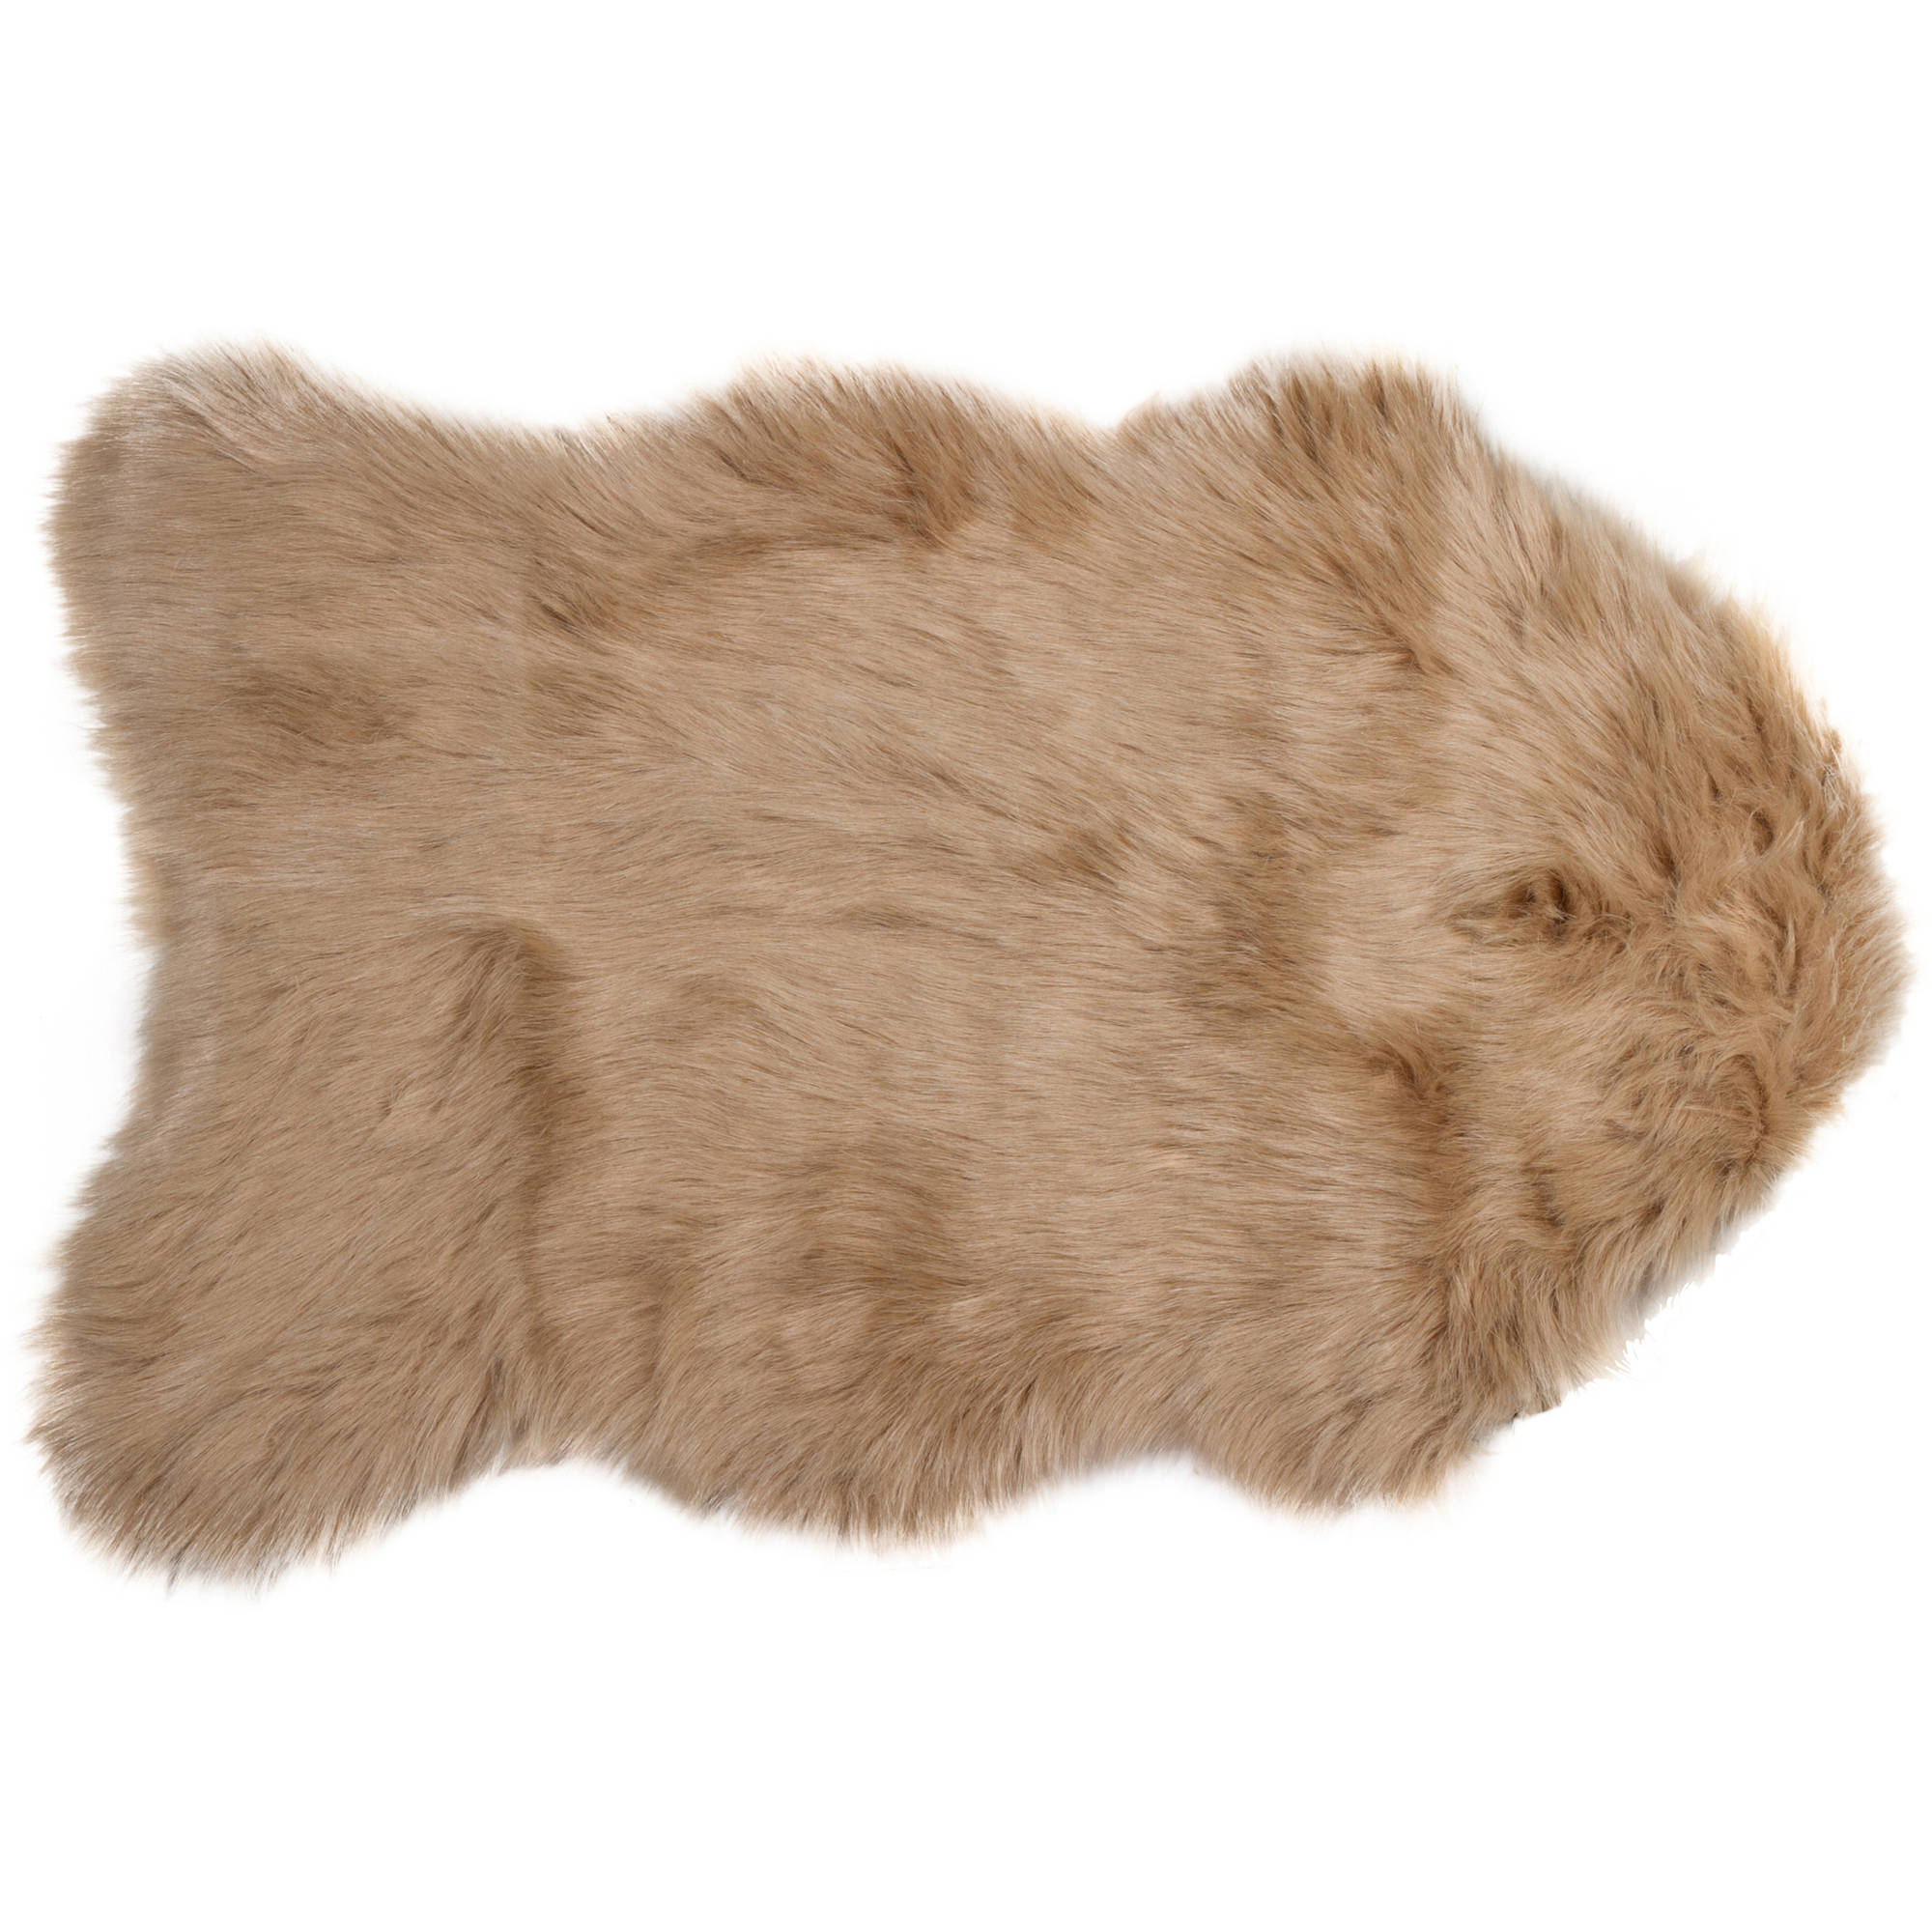 Gordon Faux Sheepskin Rug, 2' x 3'